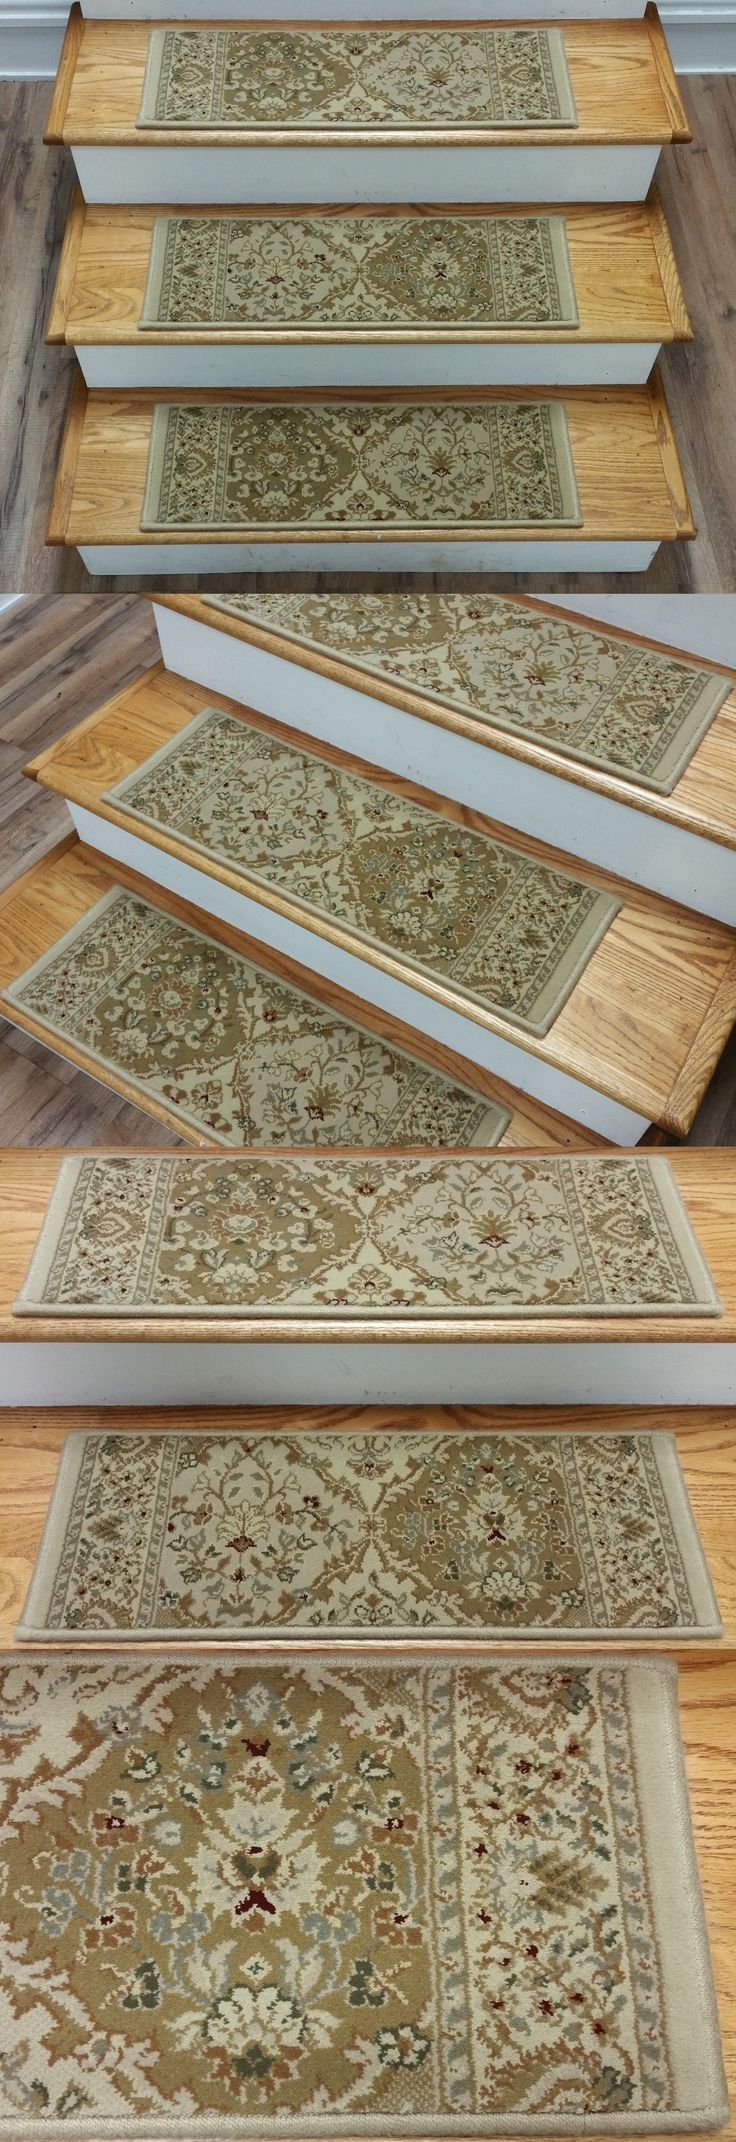 Popular Photo of Carpet Stair Treads And Rugs 9×